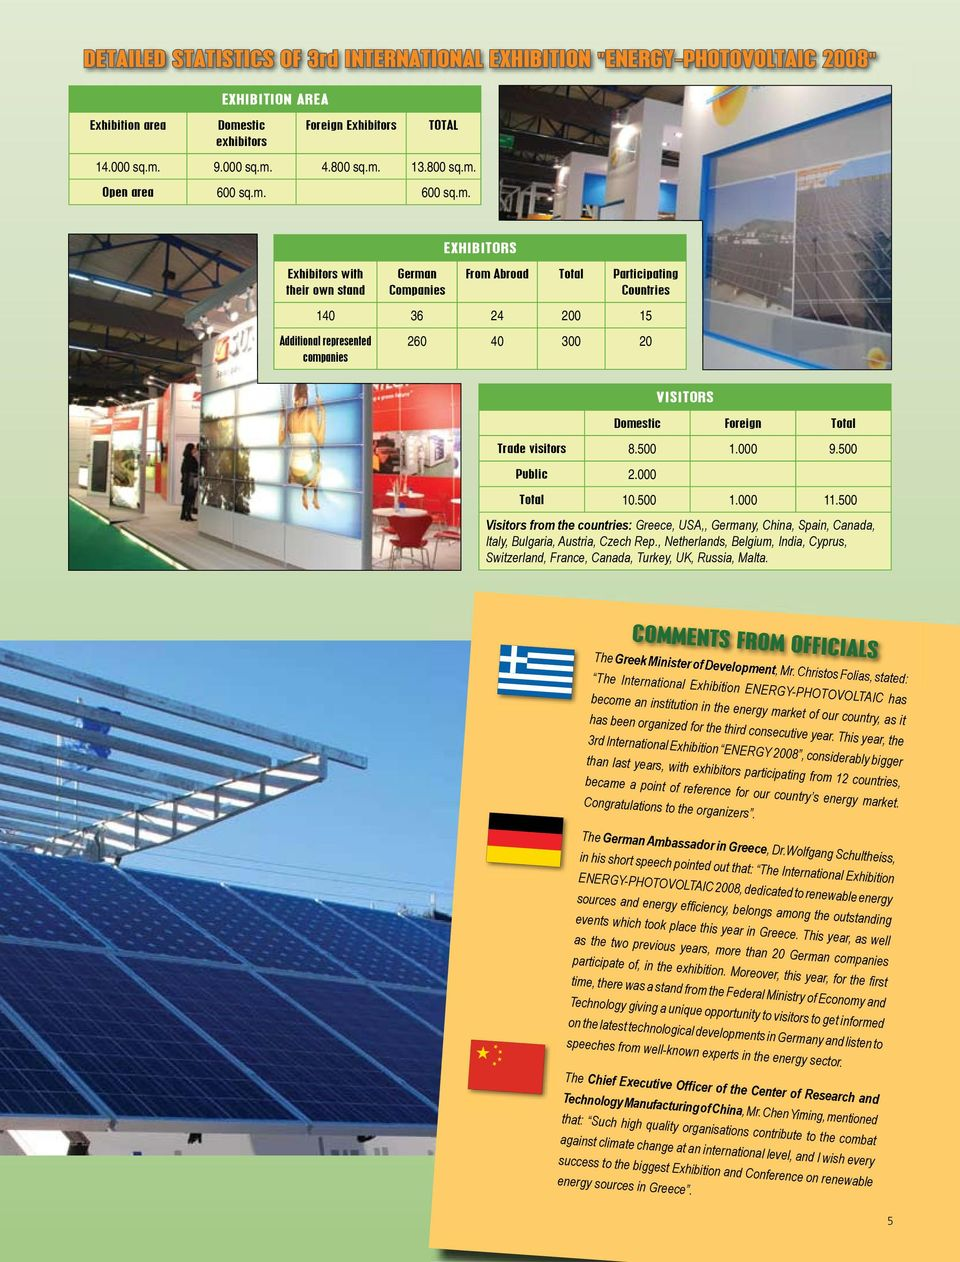 Wolfgang Schultheiss, in his short speech pointed out that: The International Exhibition ENERGY-PHOTOVOLTAIC 2008, dedicated to renewable energy sources and energy efficiency, belongs among the